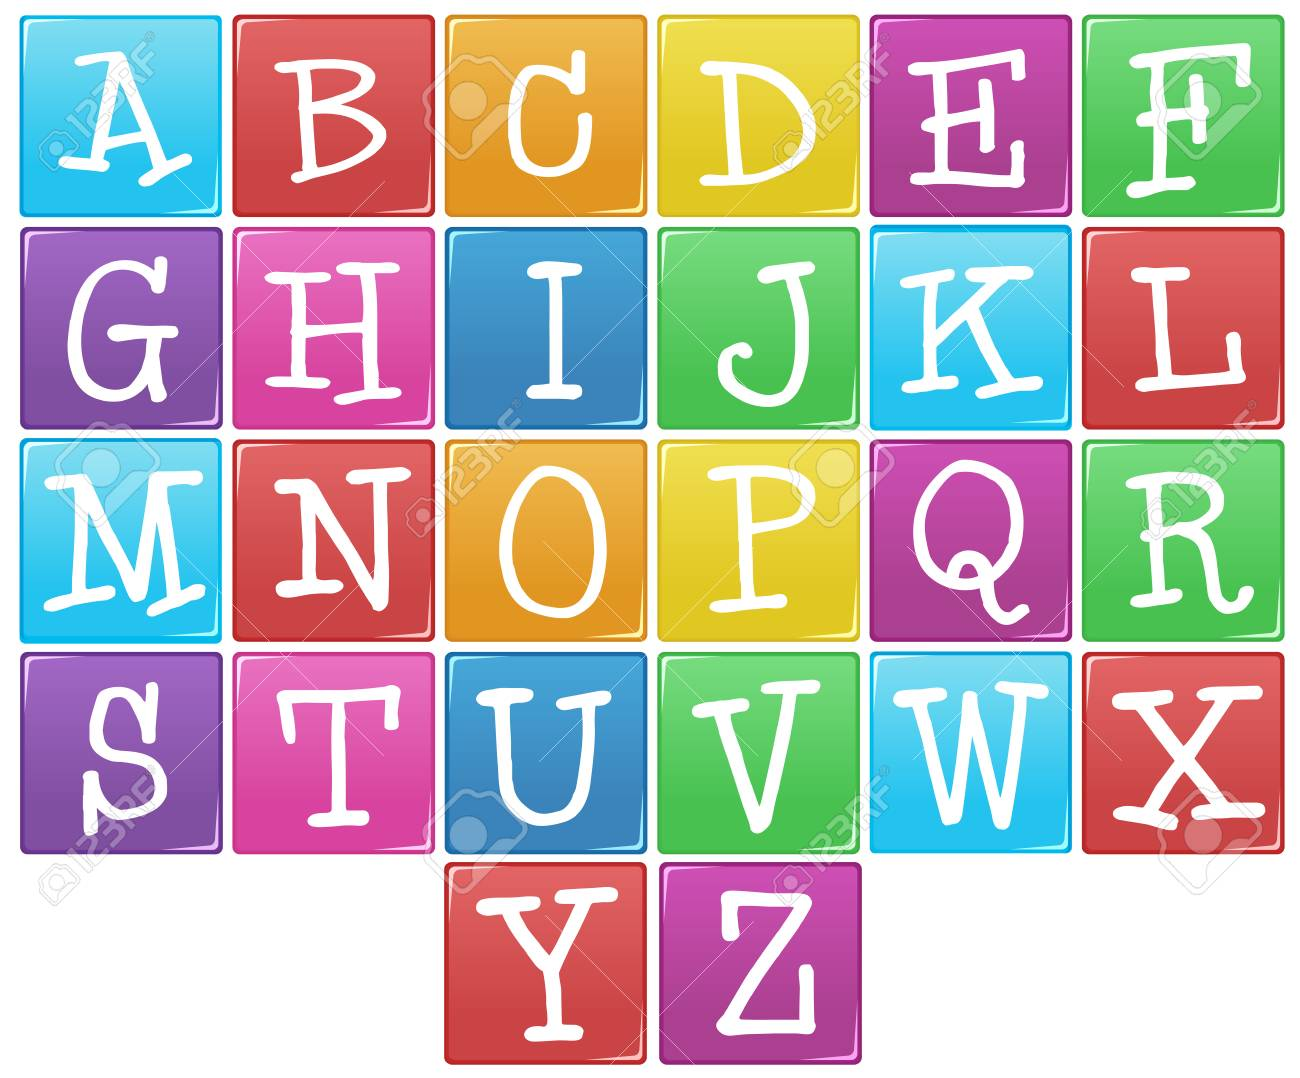 English alphabet from a to z illustration